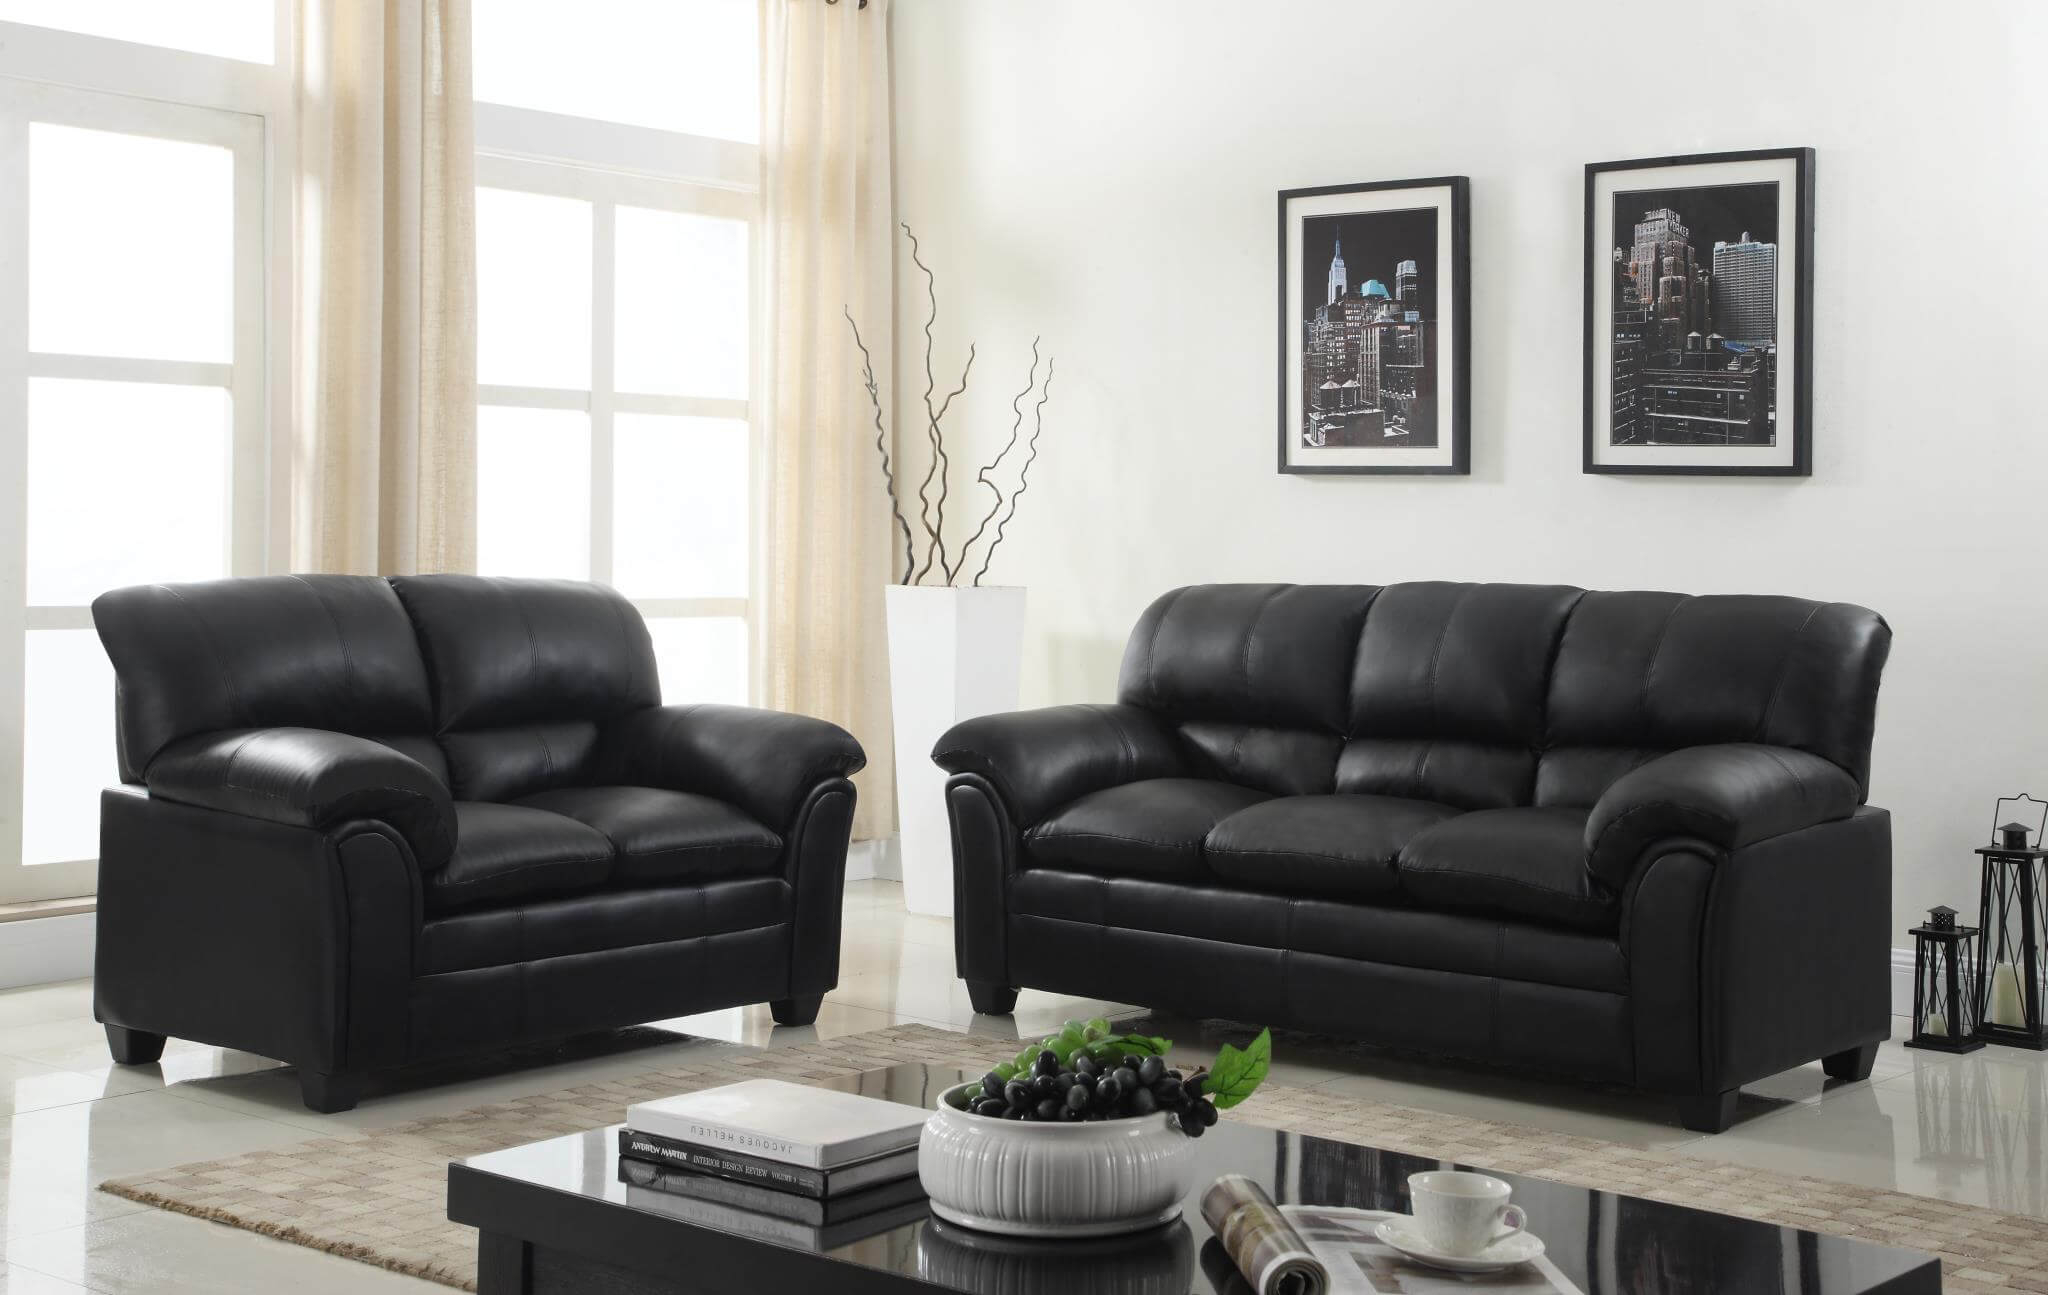 Black Sofa And Loveseat Leather Living Room Sets throughout 14 Some of the Coolest Tricks of How to Improve Black Leather Living Room Sets